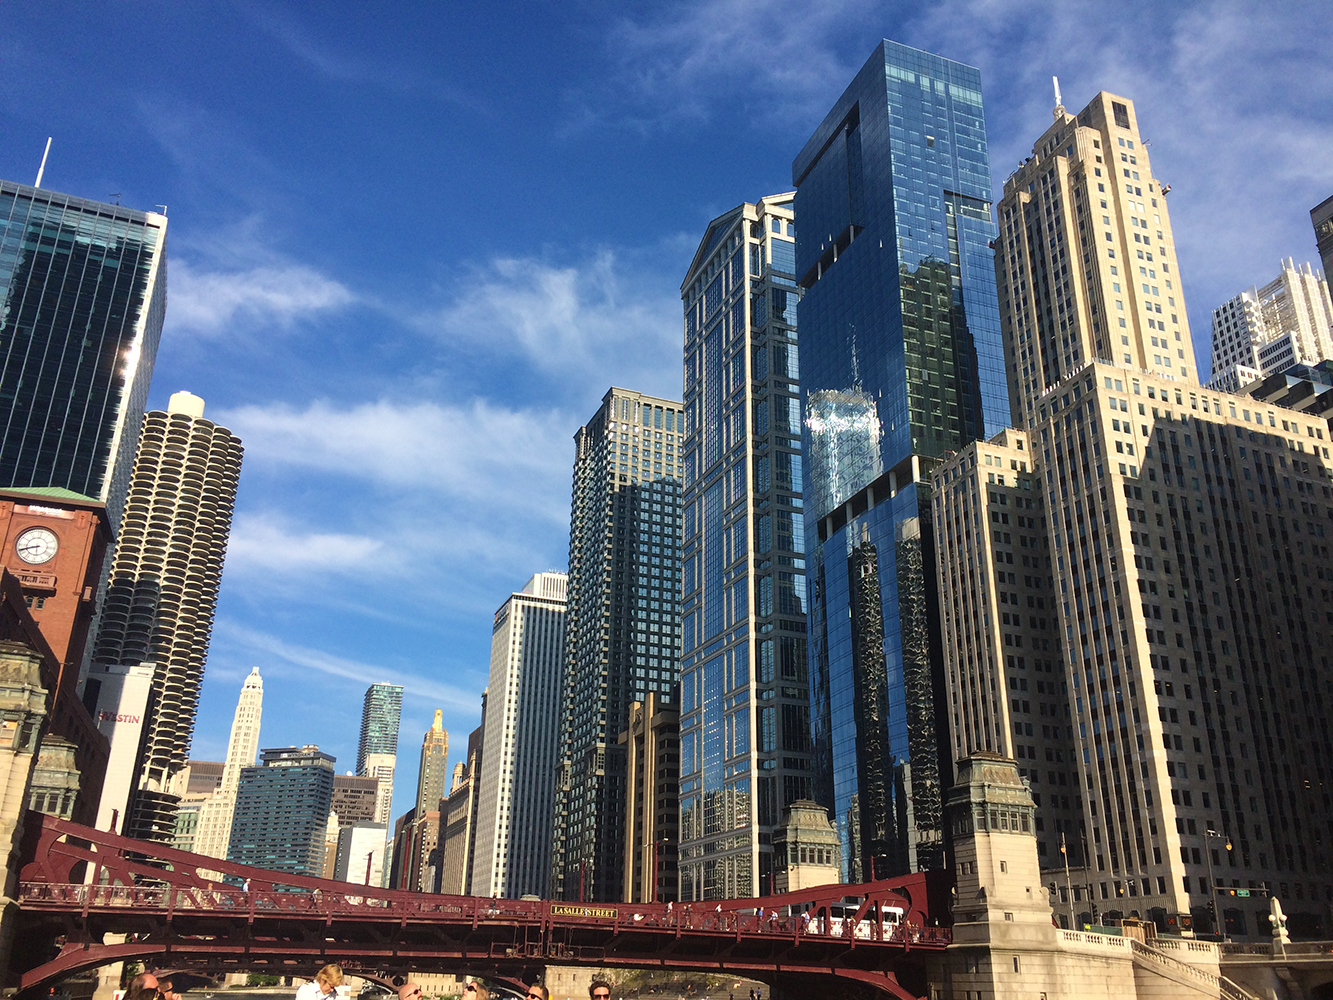 River view of Chicago canyon of skyscrapers with brown bridge in foreground Architectural Photography